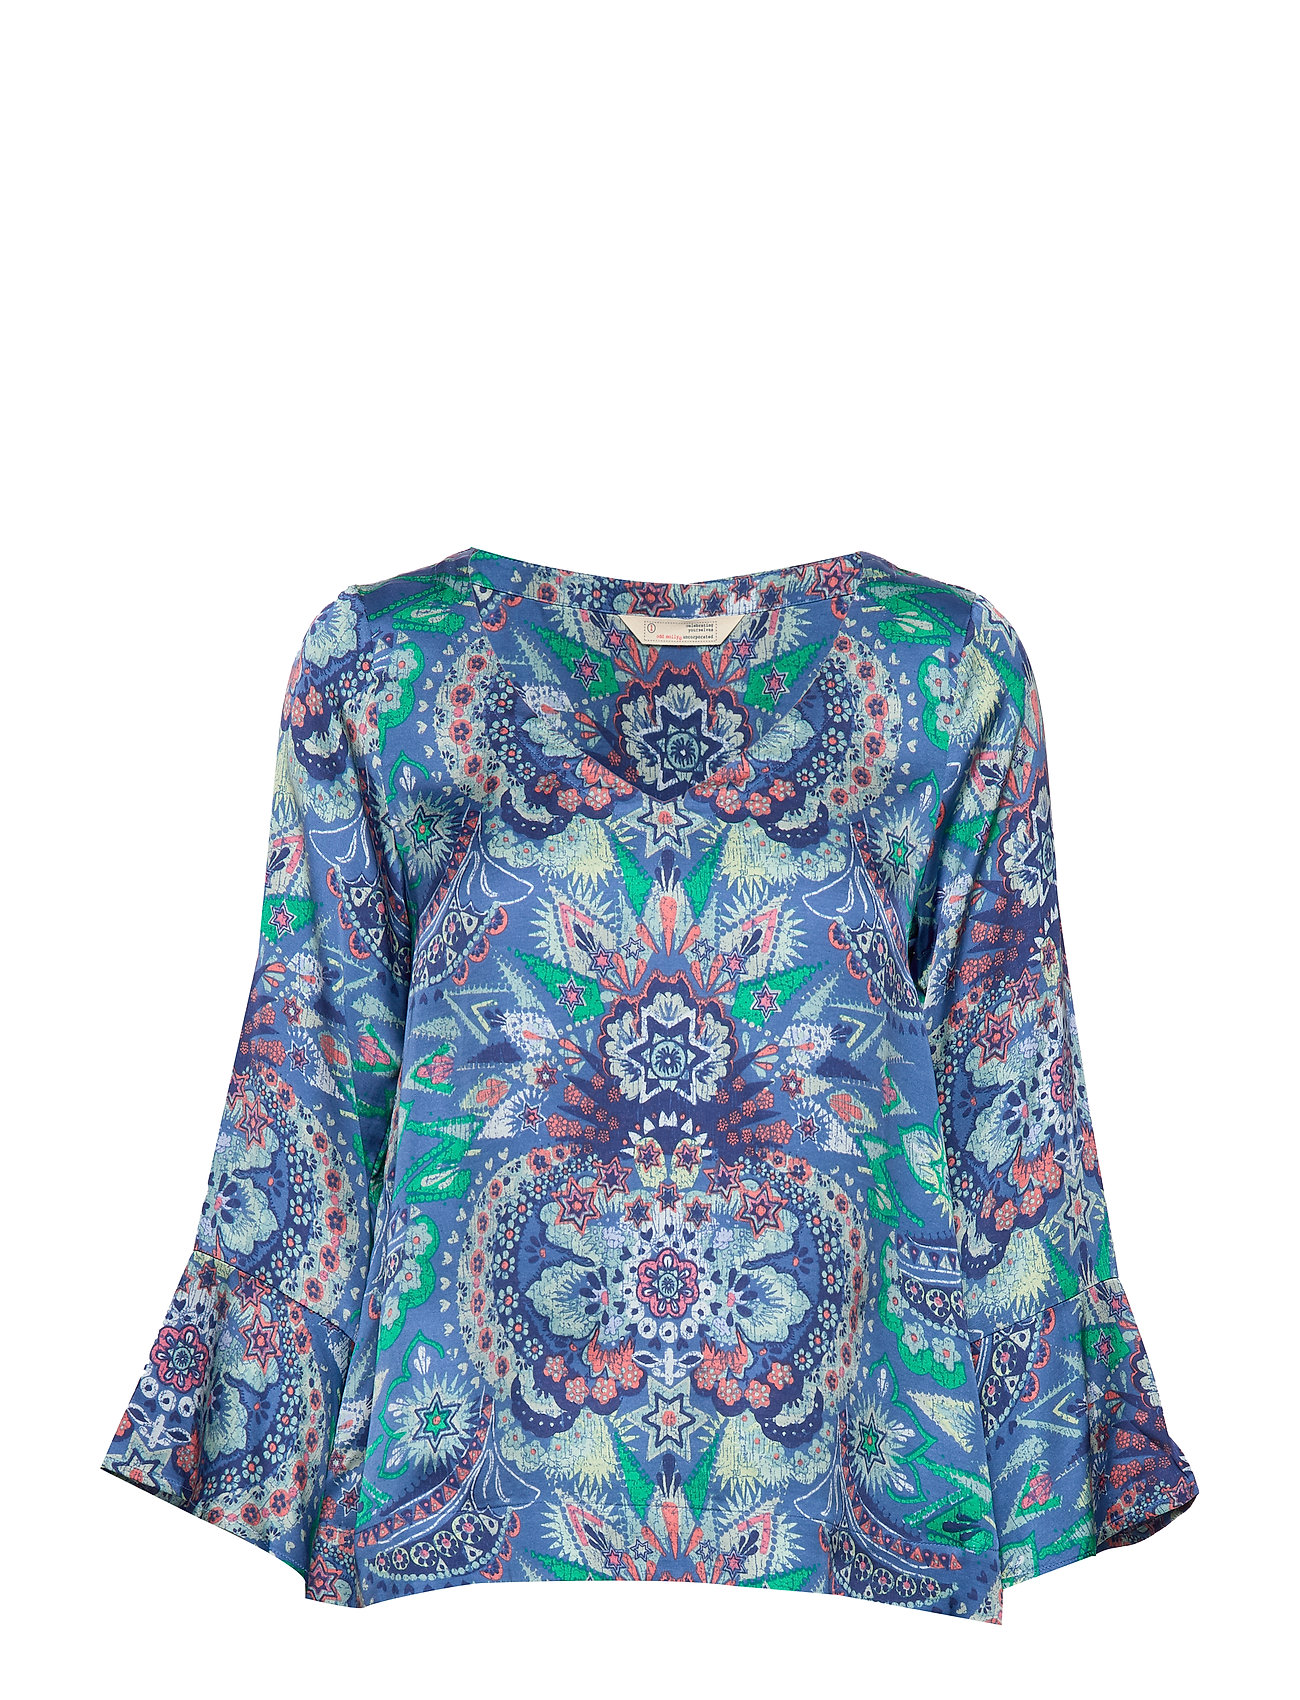 ODD MOLLY Head Turner Blouse - WASHED COBALT